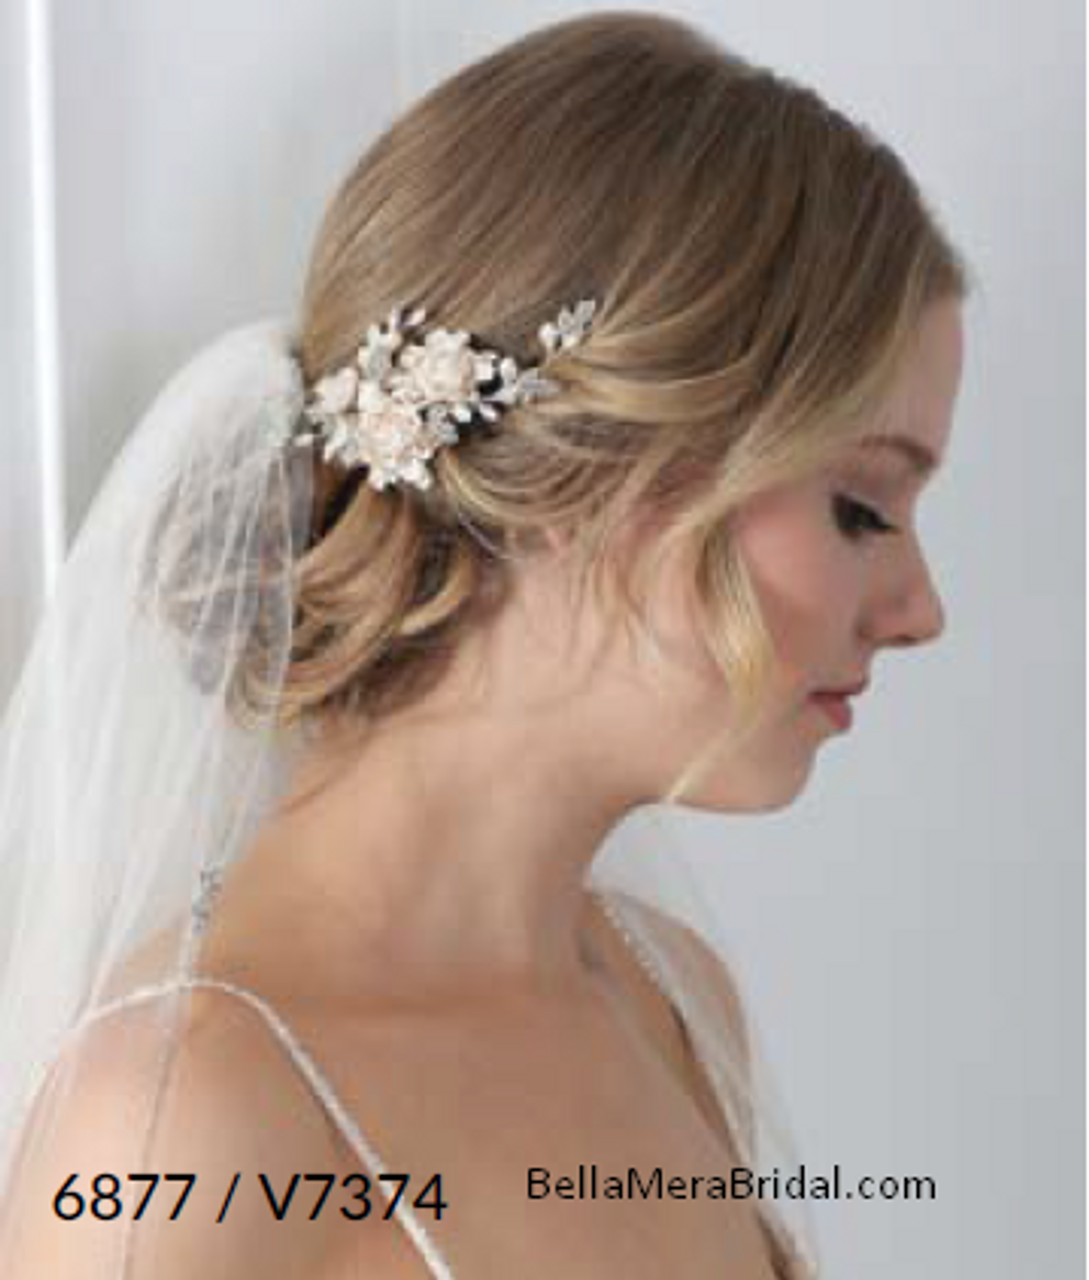 Bel Aire Bridal 6877 - Bridal clip of beaded edge veil with moonstone/rhinestone clusters